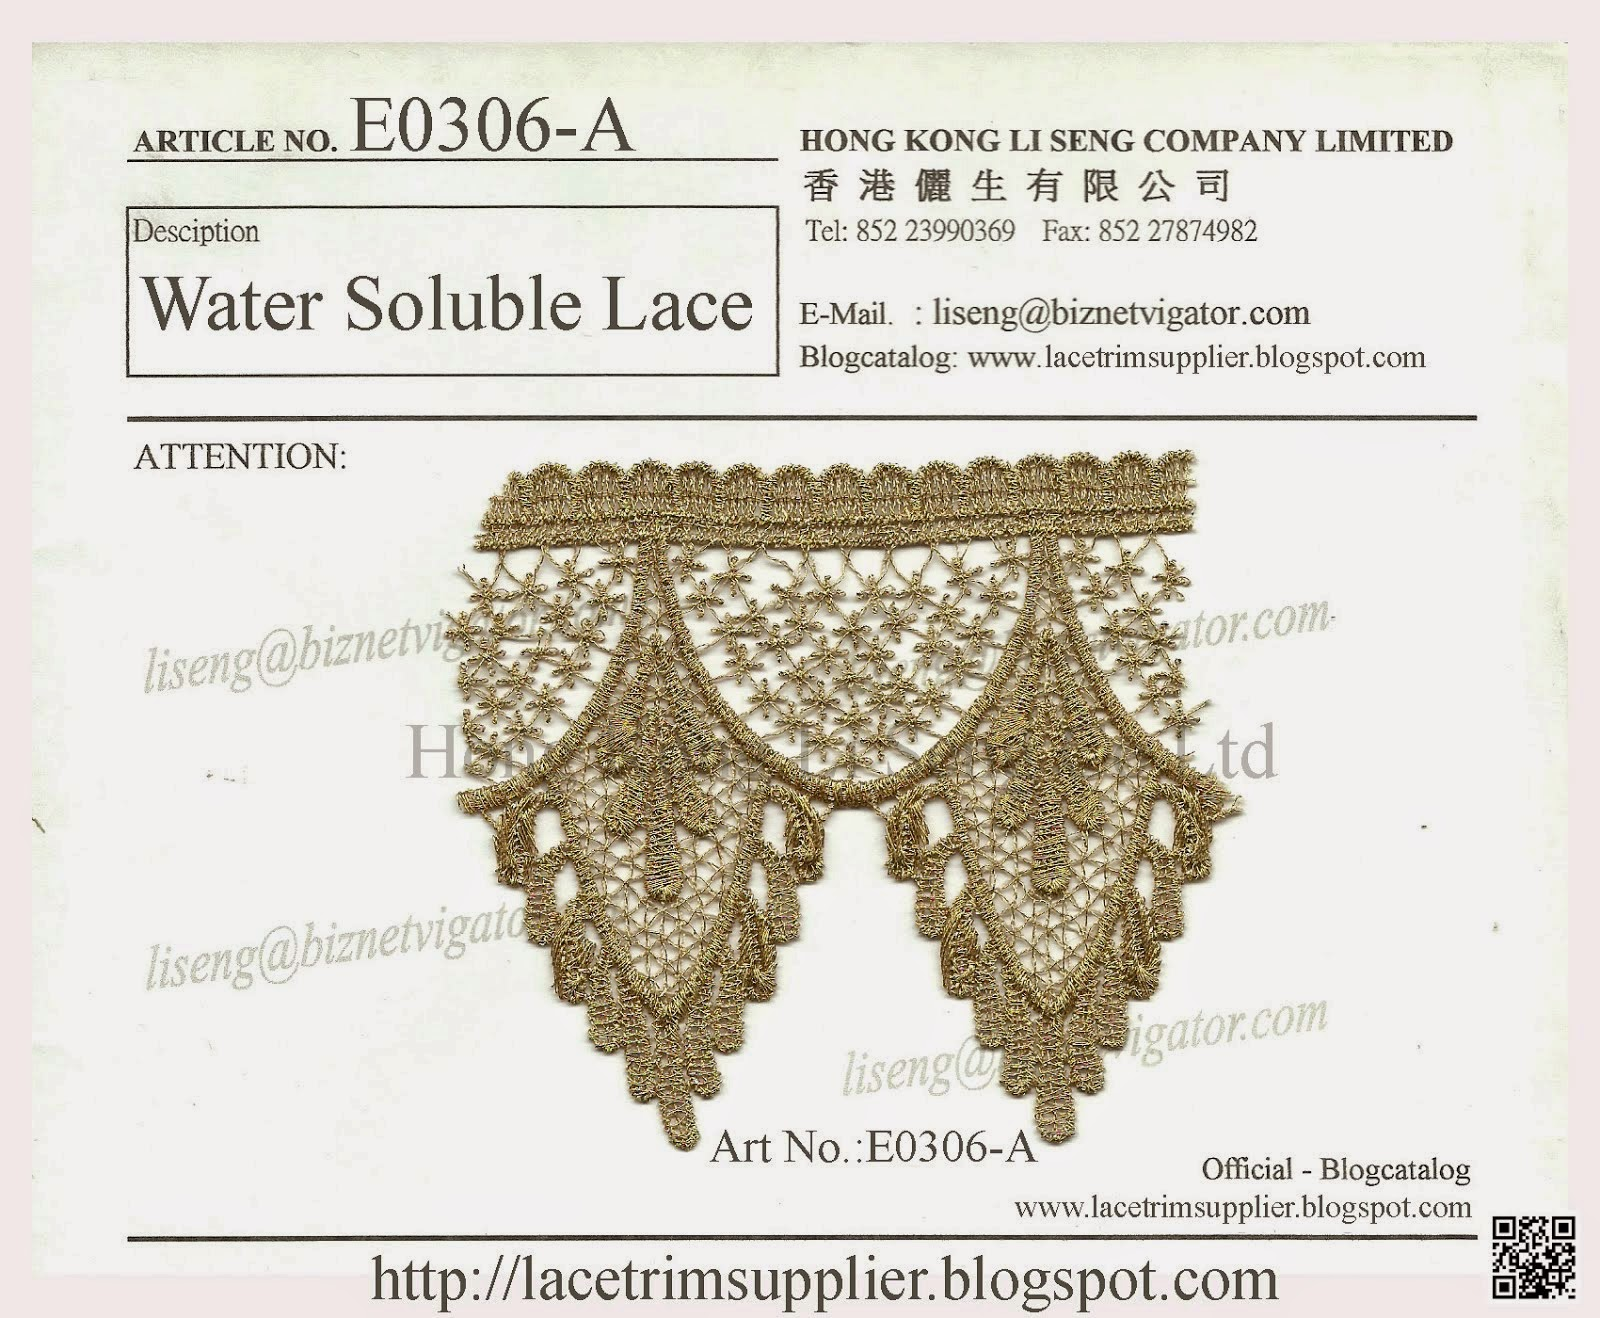 Golden Lurex Water Soluble Lace Manufacturer